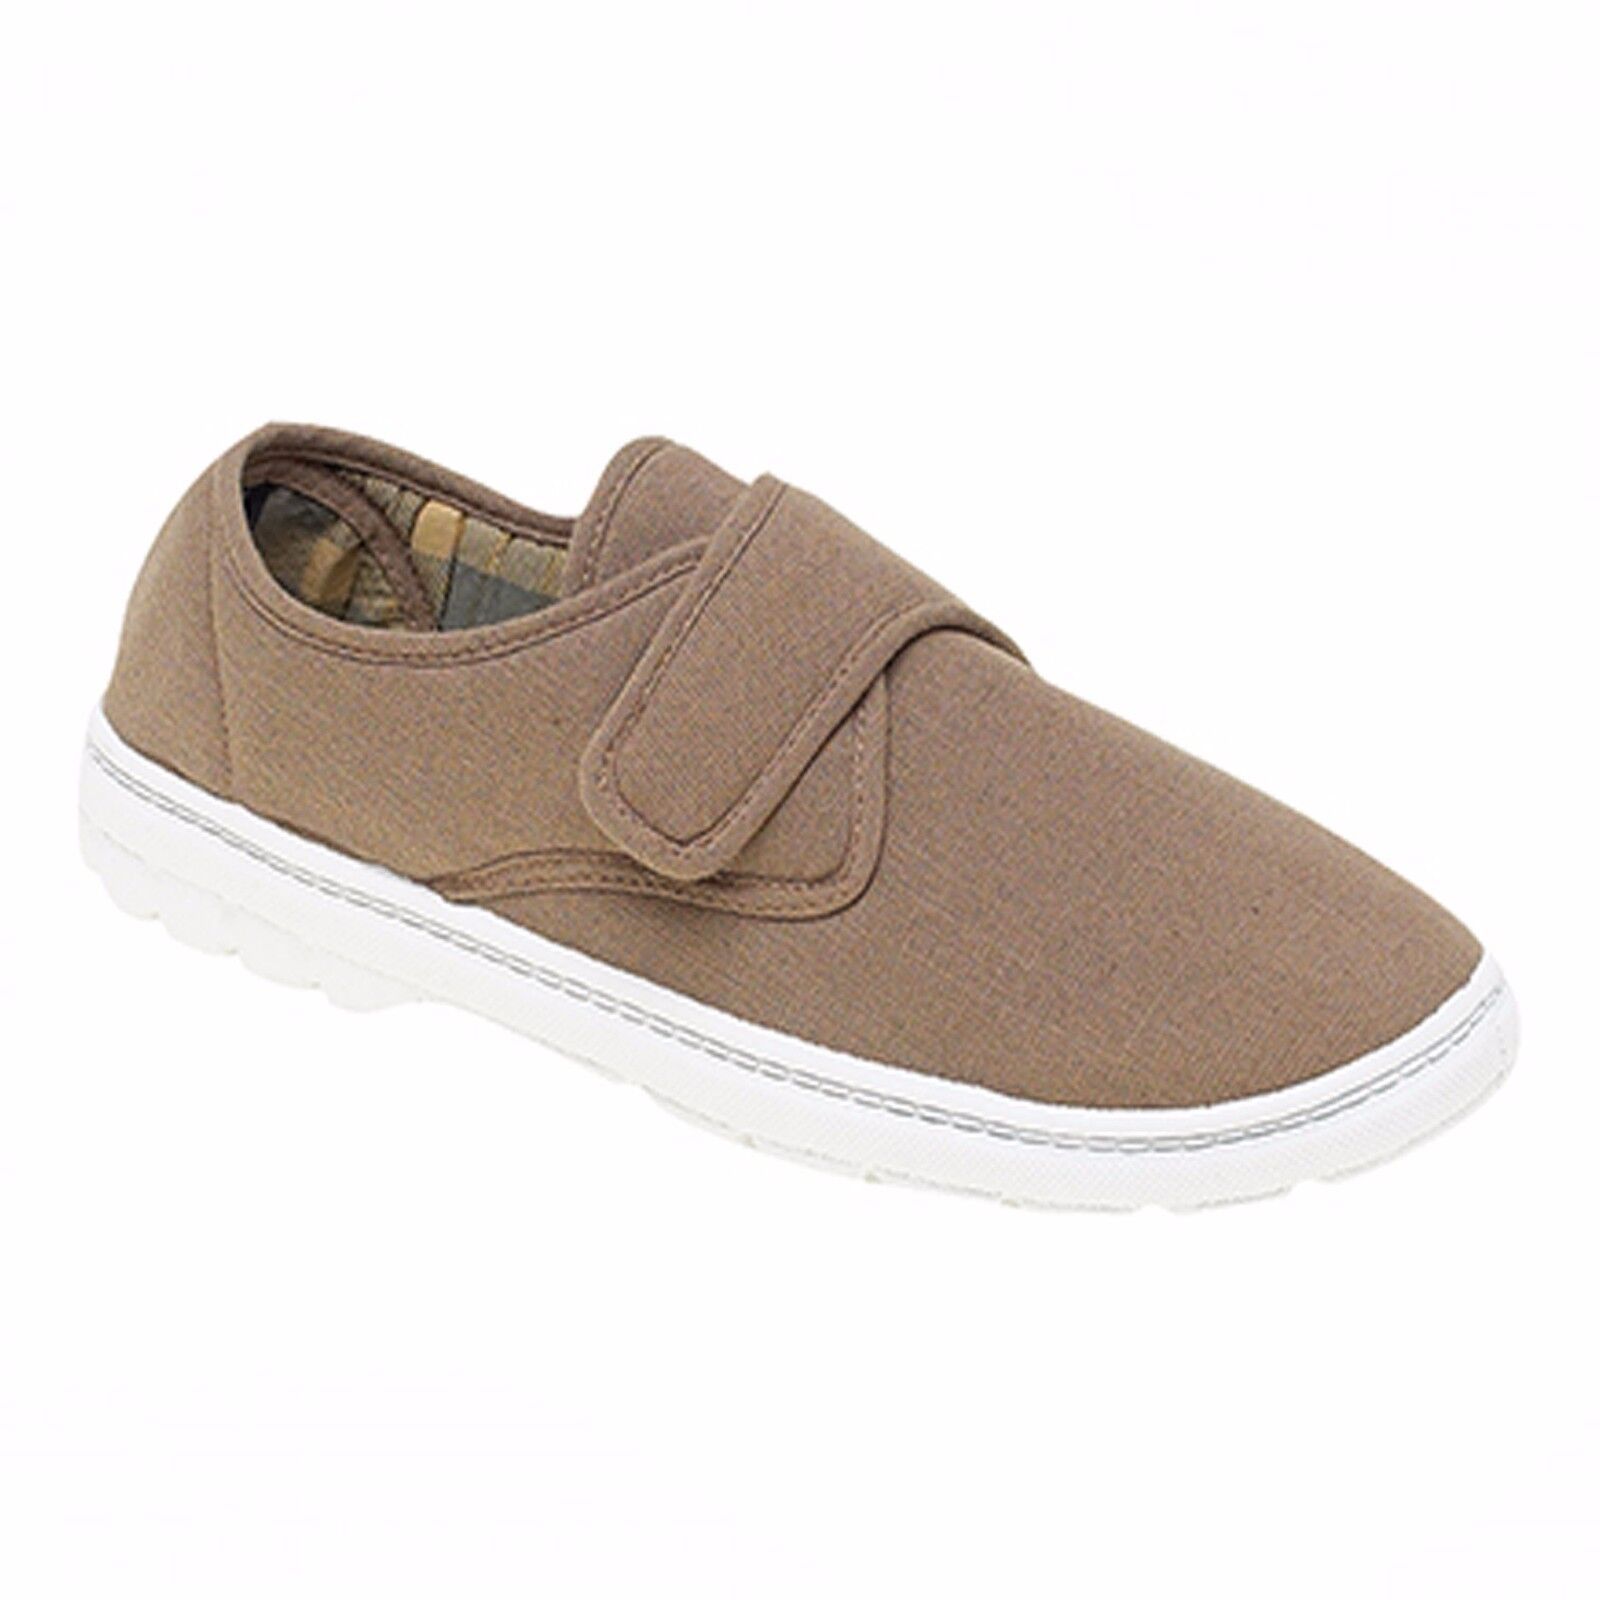 Gordini Padded Lined Adjustable Touch Fasten BNWT* Loafers Shoes Size 8 BNWT* Fasten Taupe 3c40be